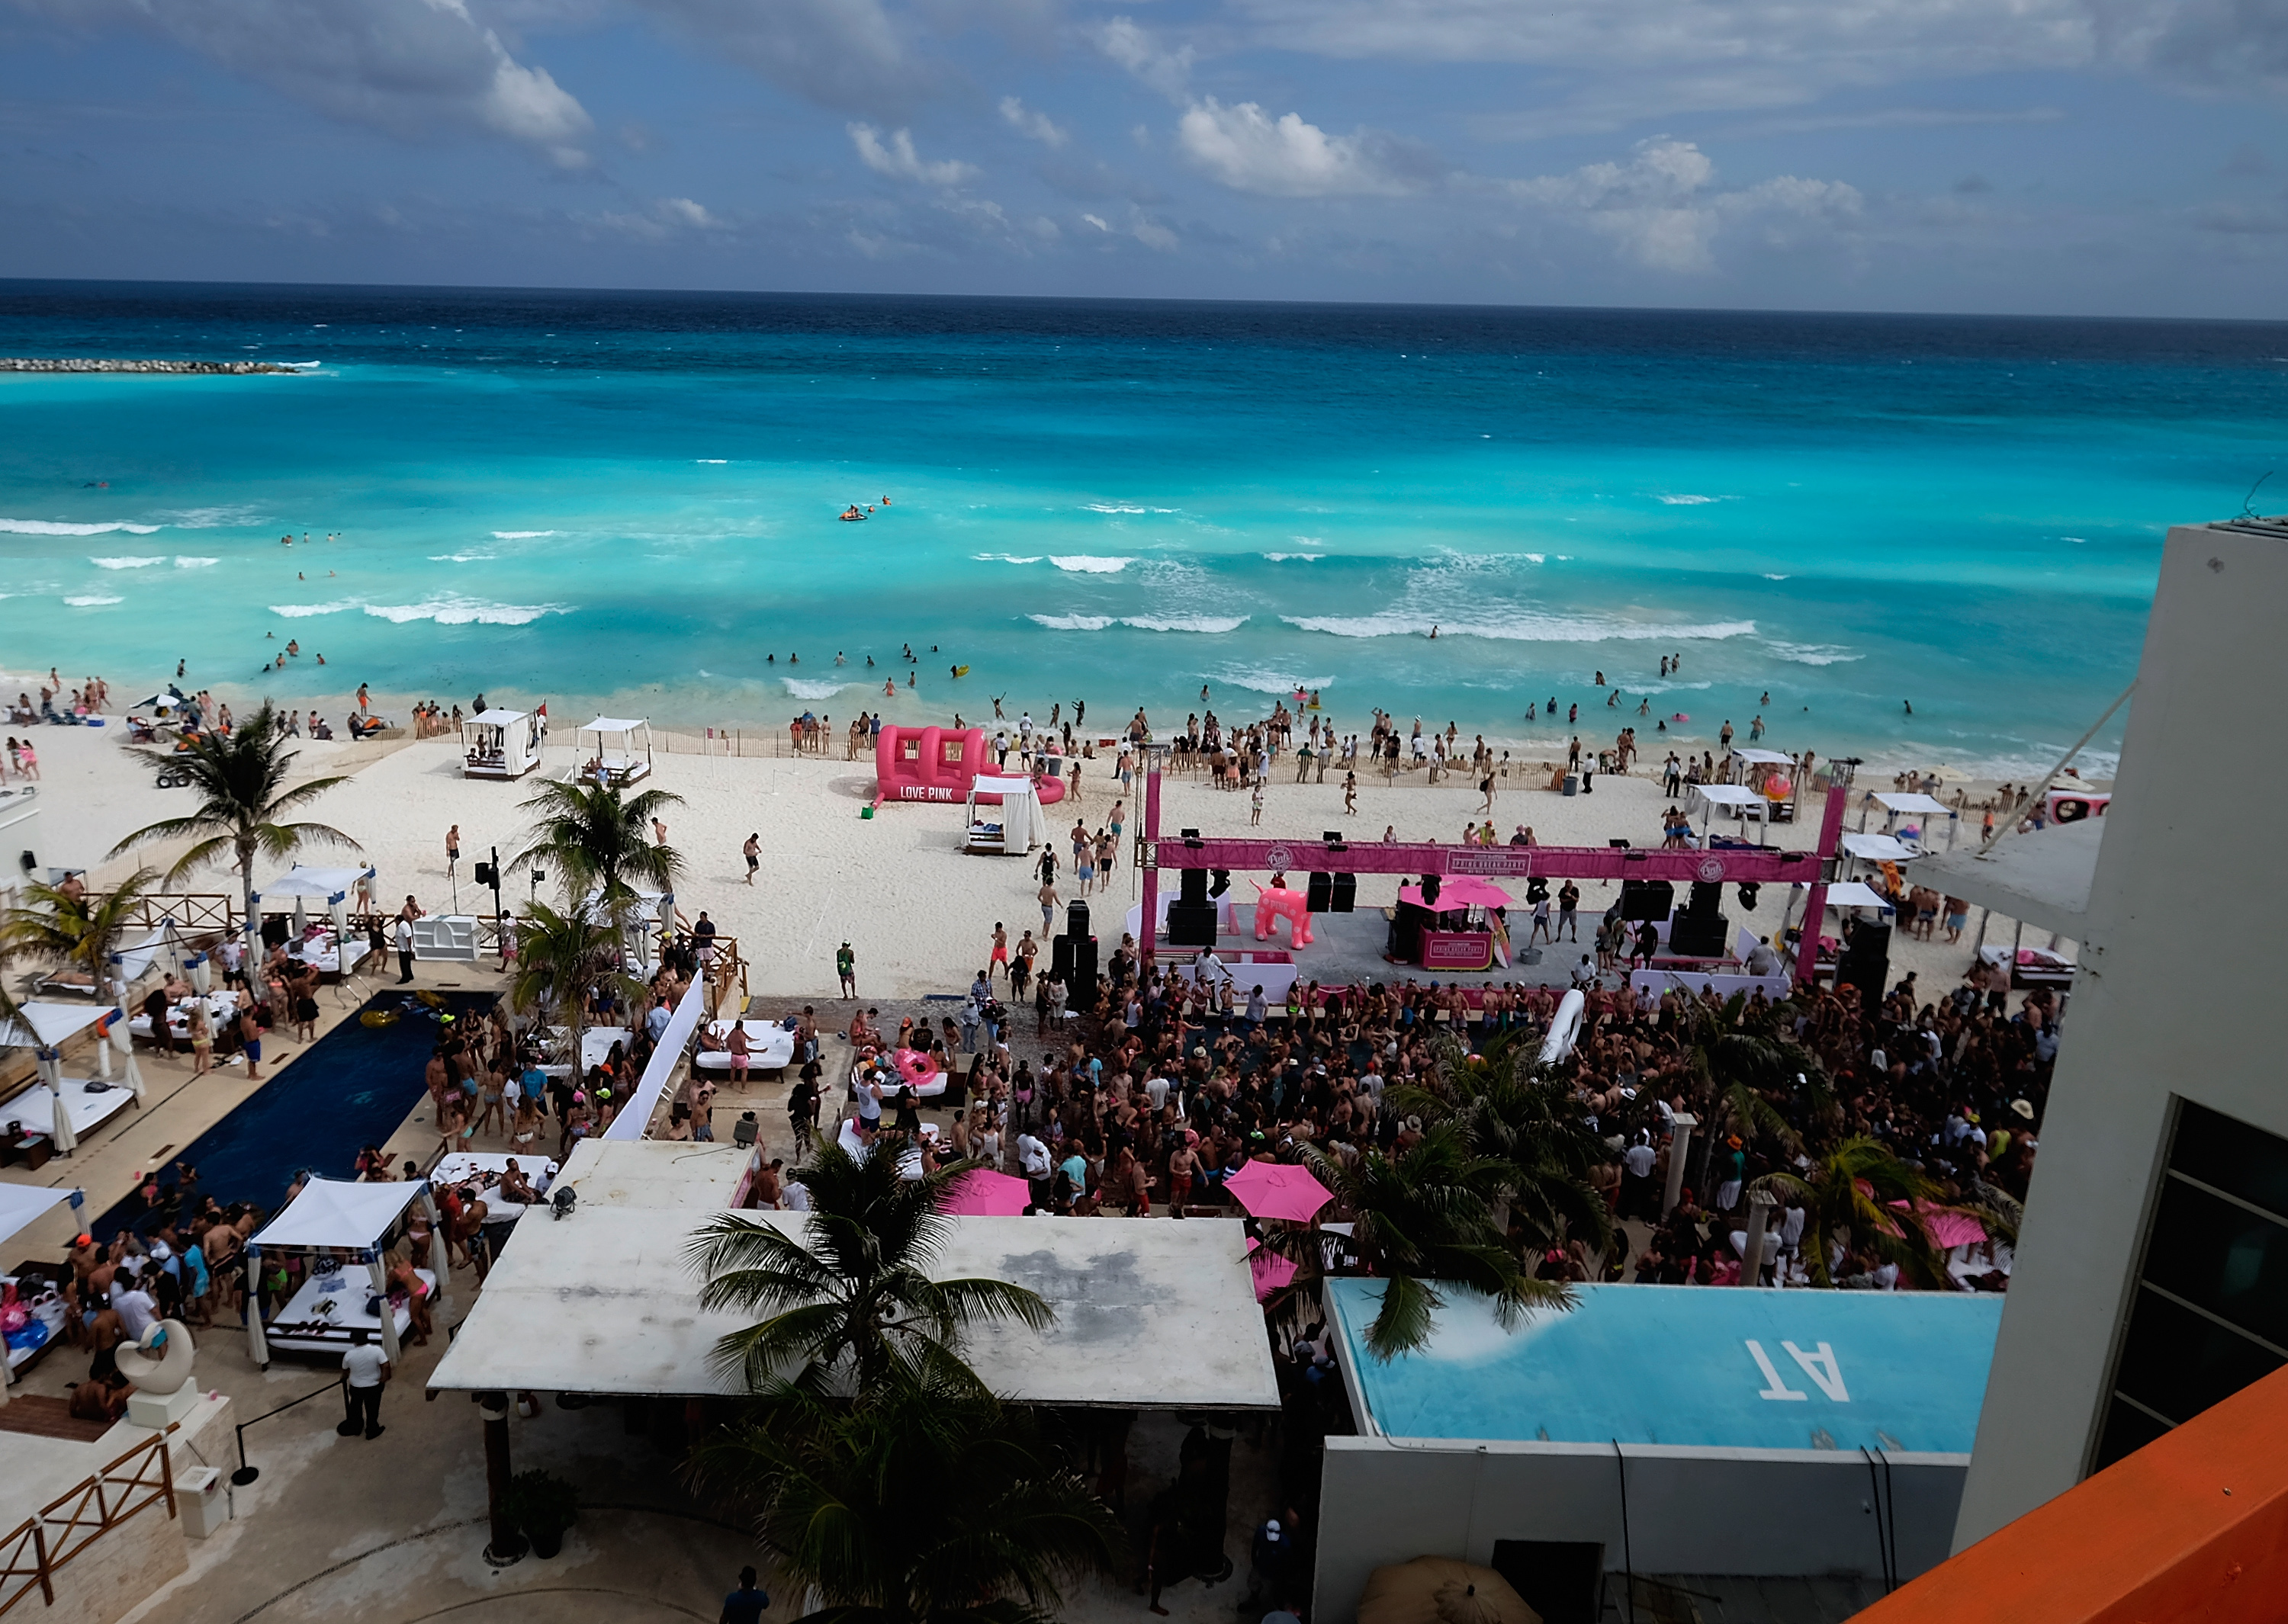 The Best Places To Go On Adult Spring Break That Arent - 10 amazing day trips to take in cancun